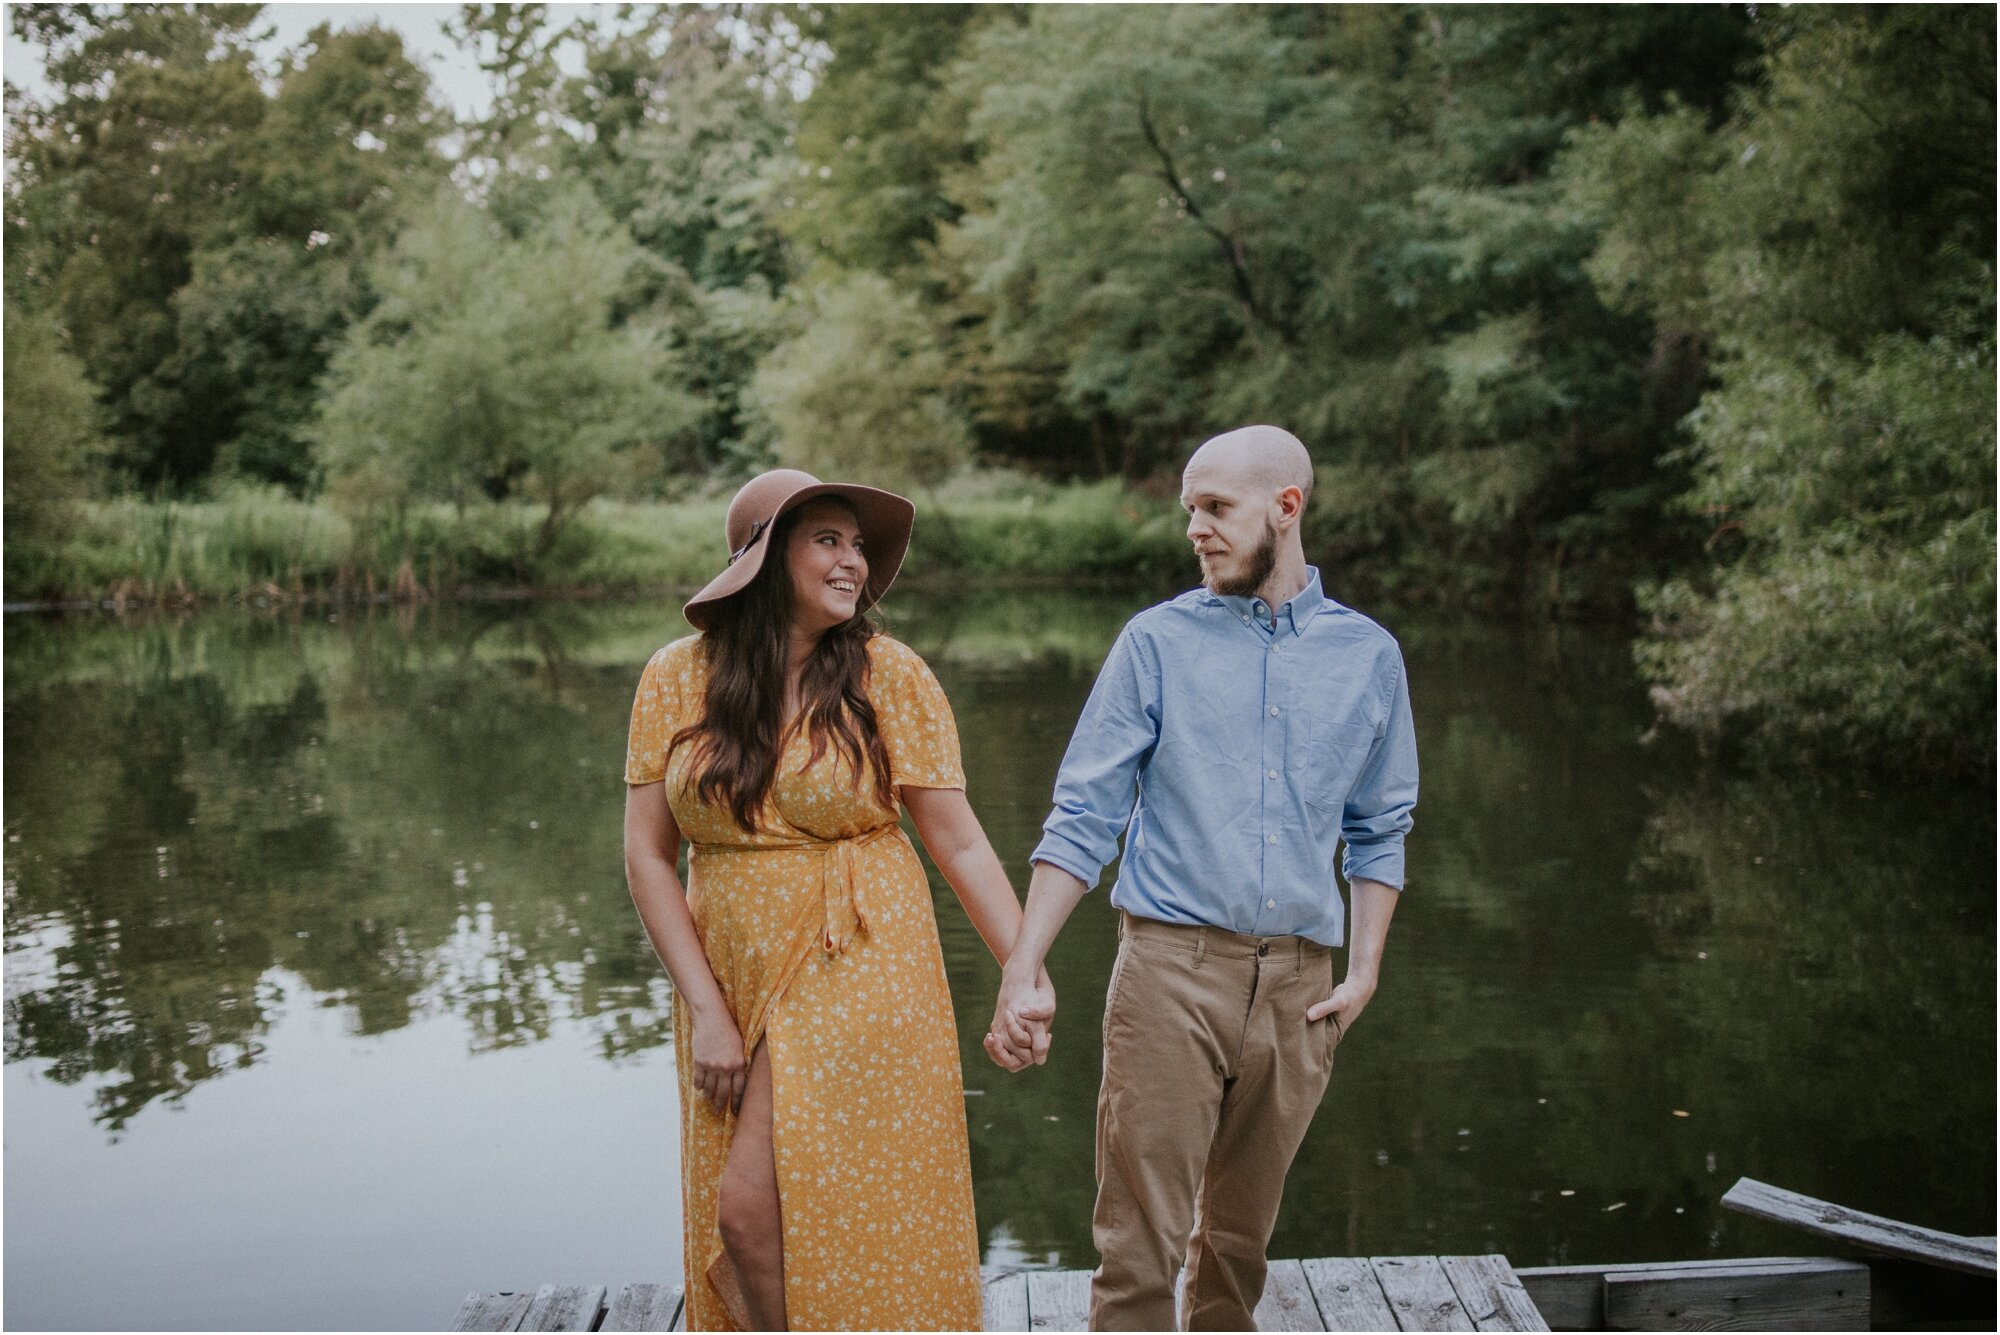 kingsport-tennessee-backyard-pond-bays-mountain-summer-engagement-session_0046.jpg